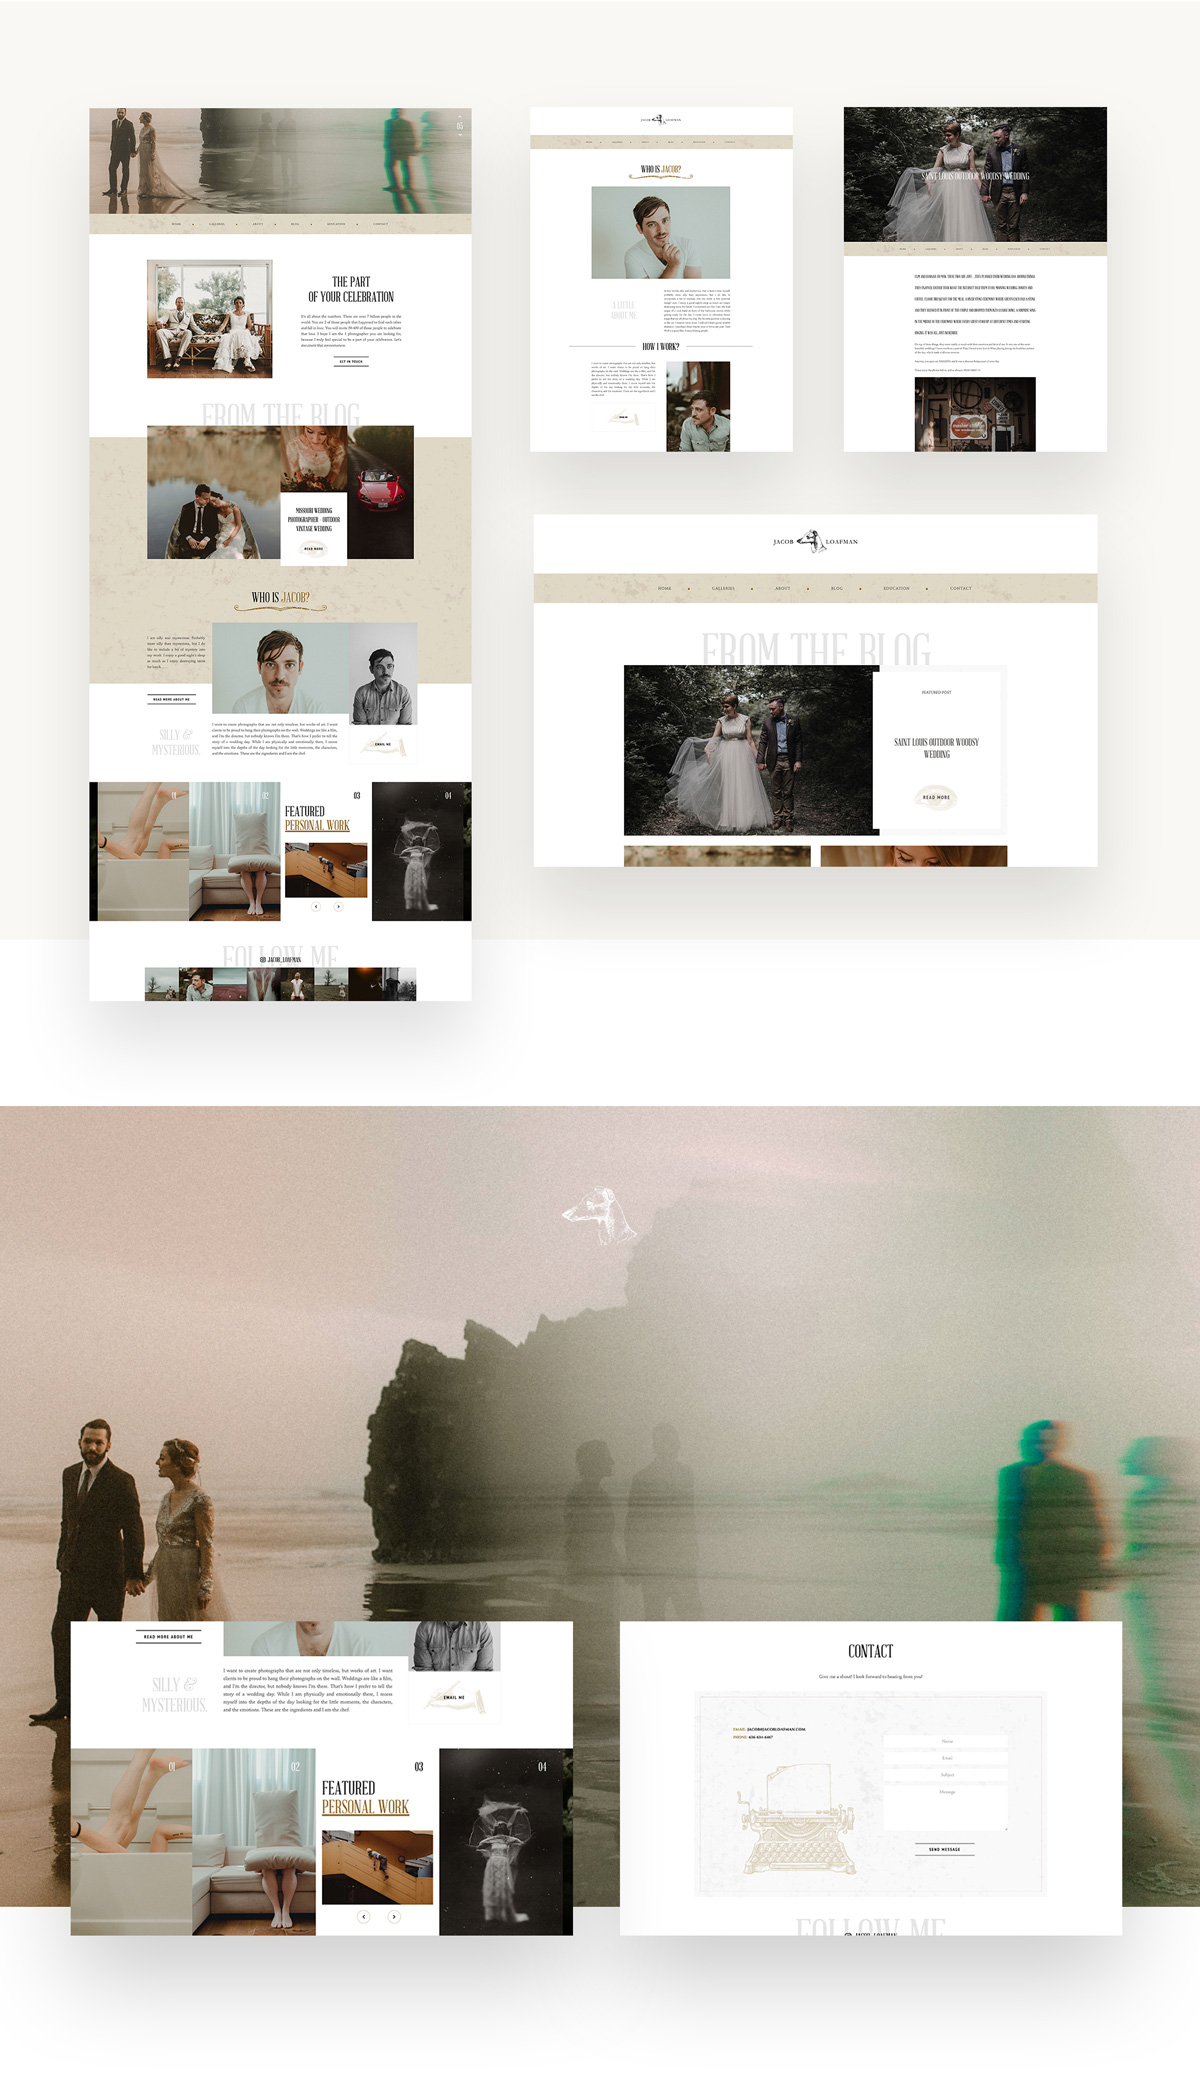 Jacob Loafman Custom Website Design layouts by Flothemes, wedding and conceptual photography